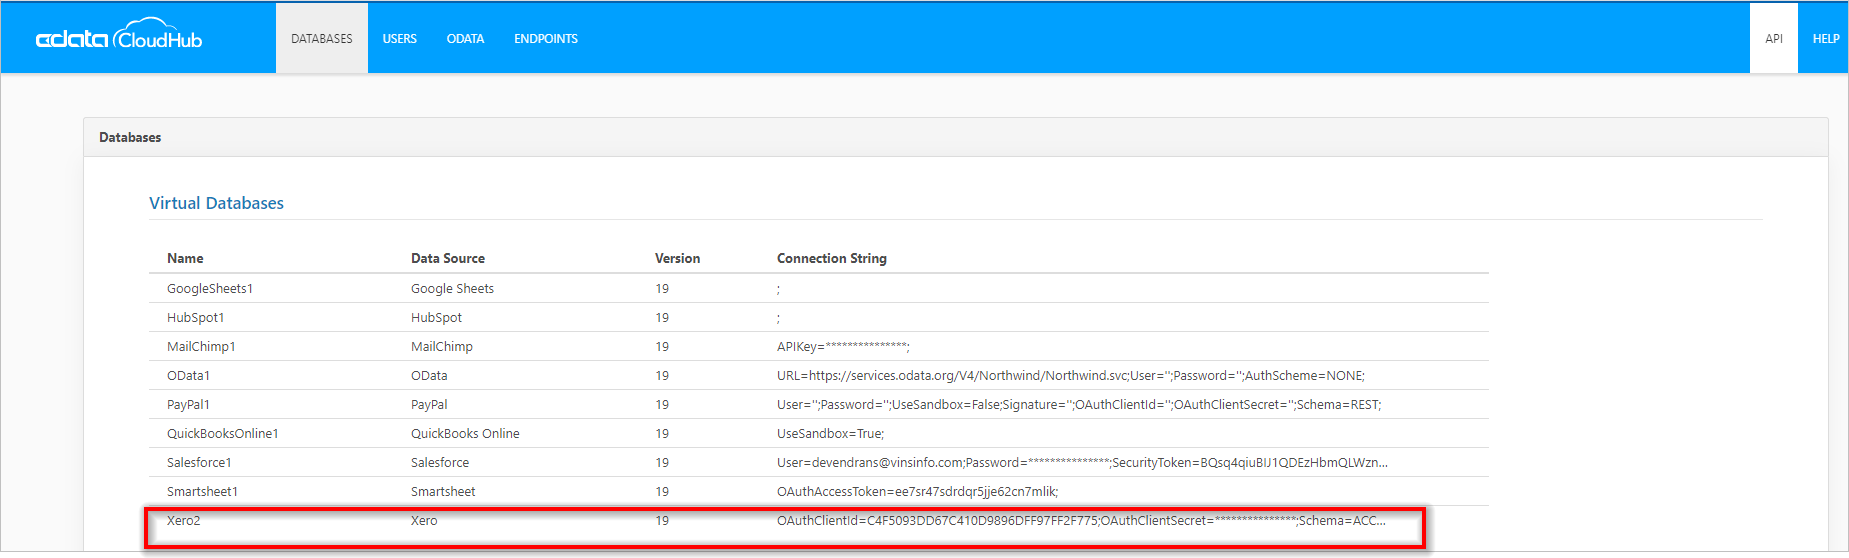 Showing Available Databases in CData Cloud Hub